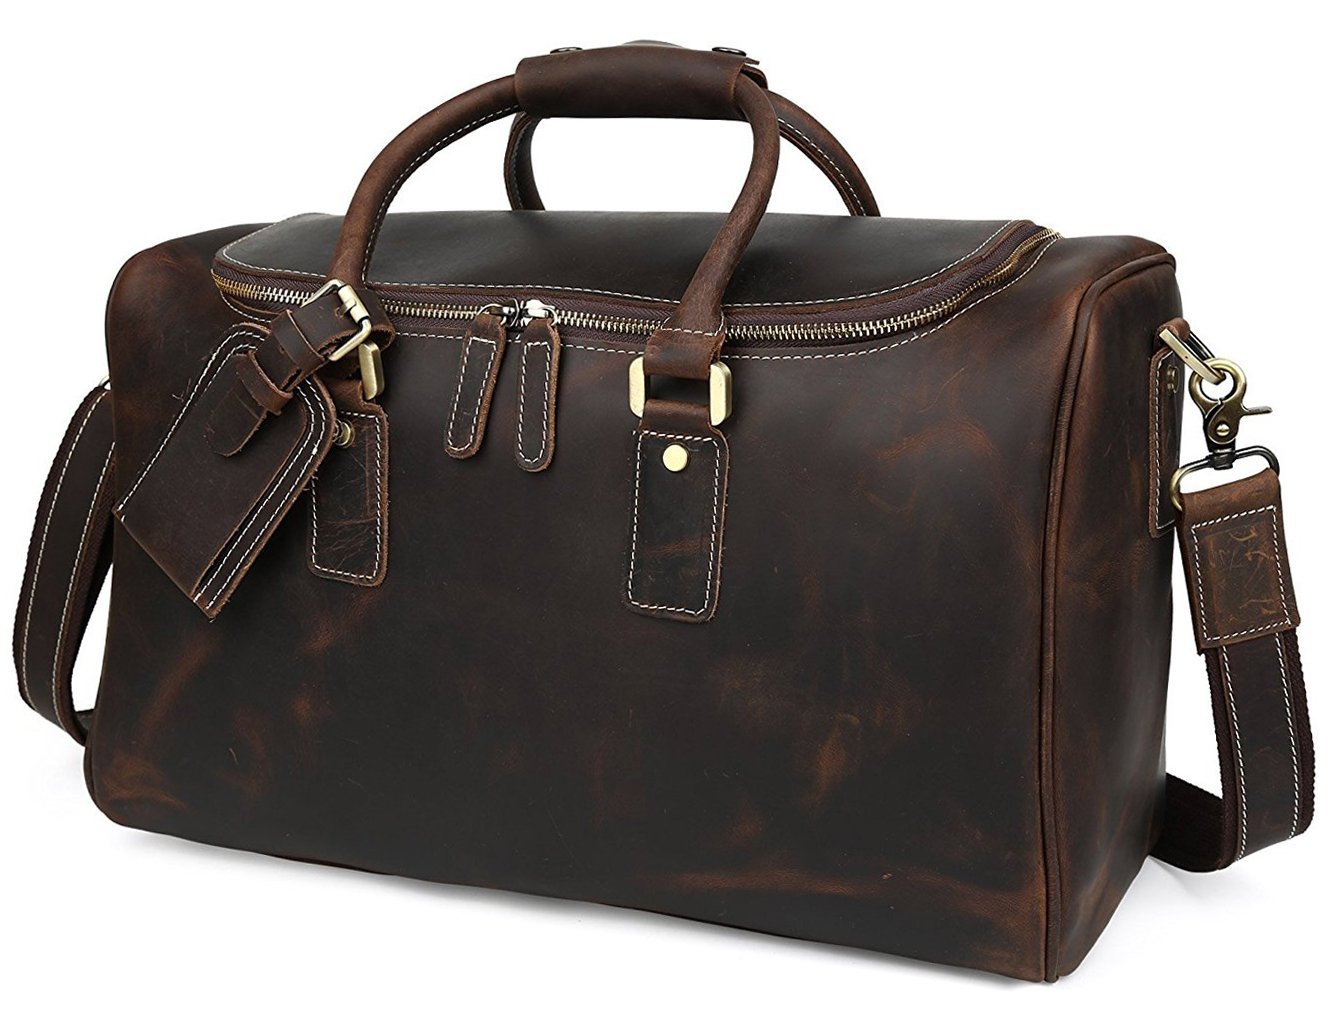 BAIGIO Men's Vintage Leather Travel Duffel Overnight Weekend Bag Tote Luggage (Dark Brown)